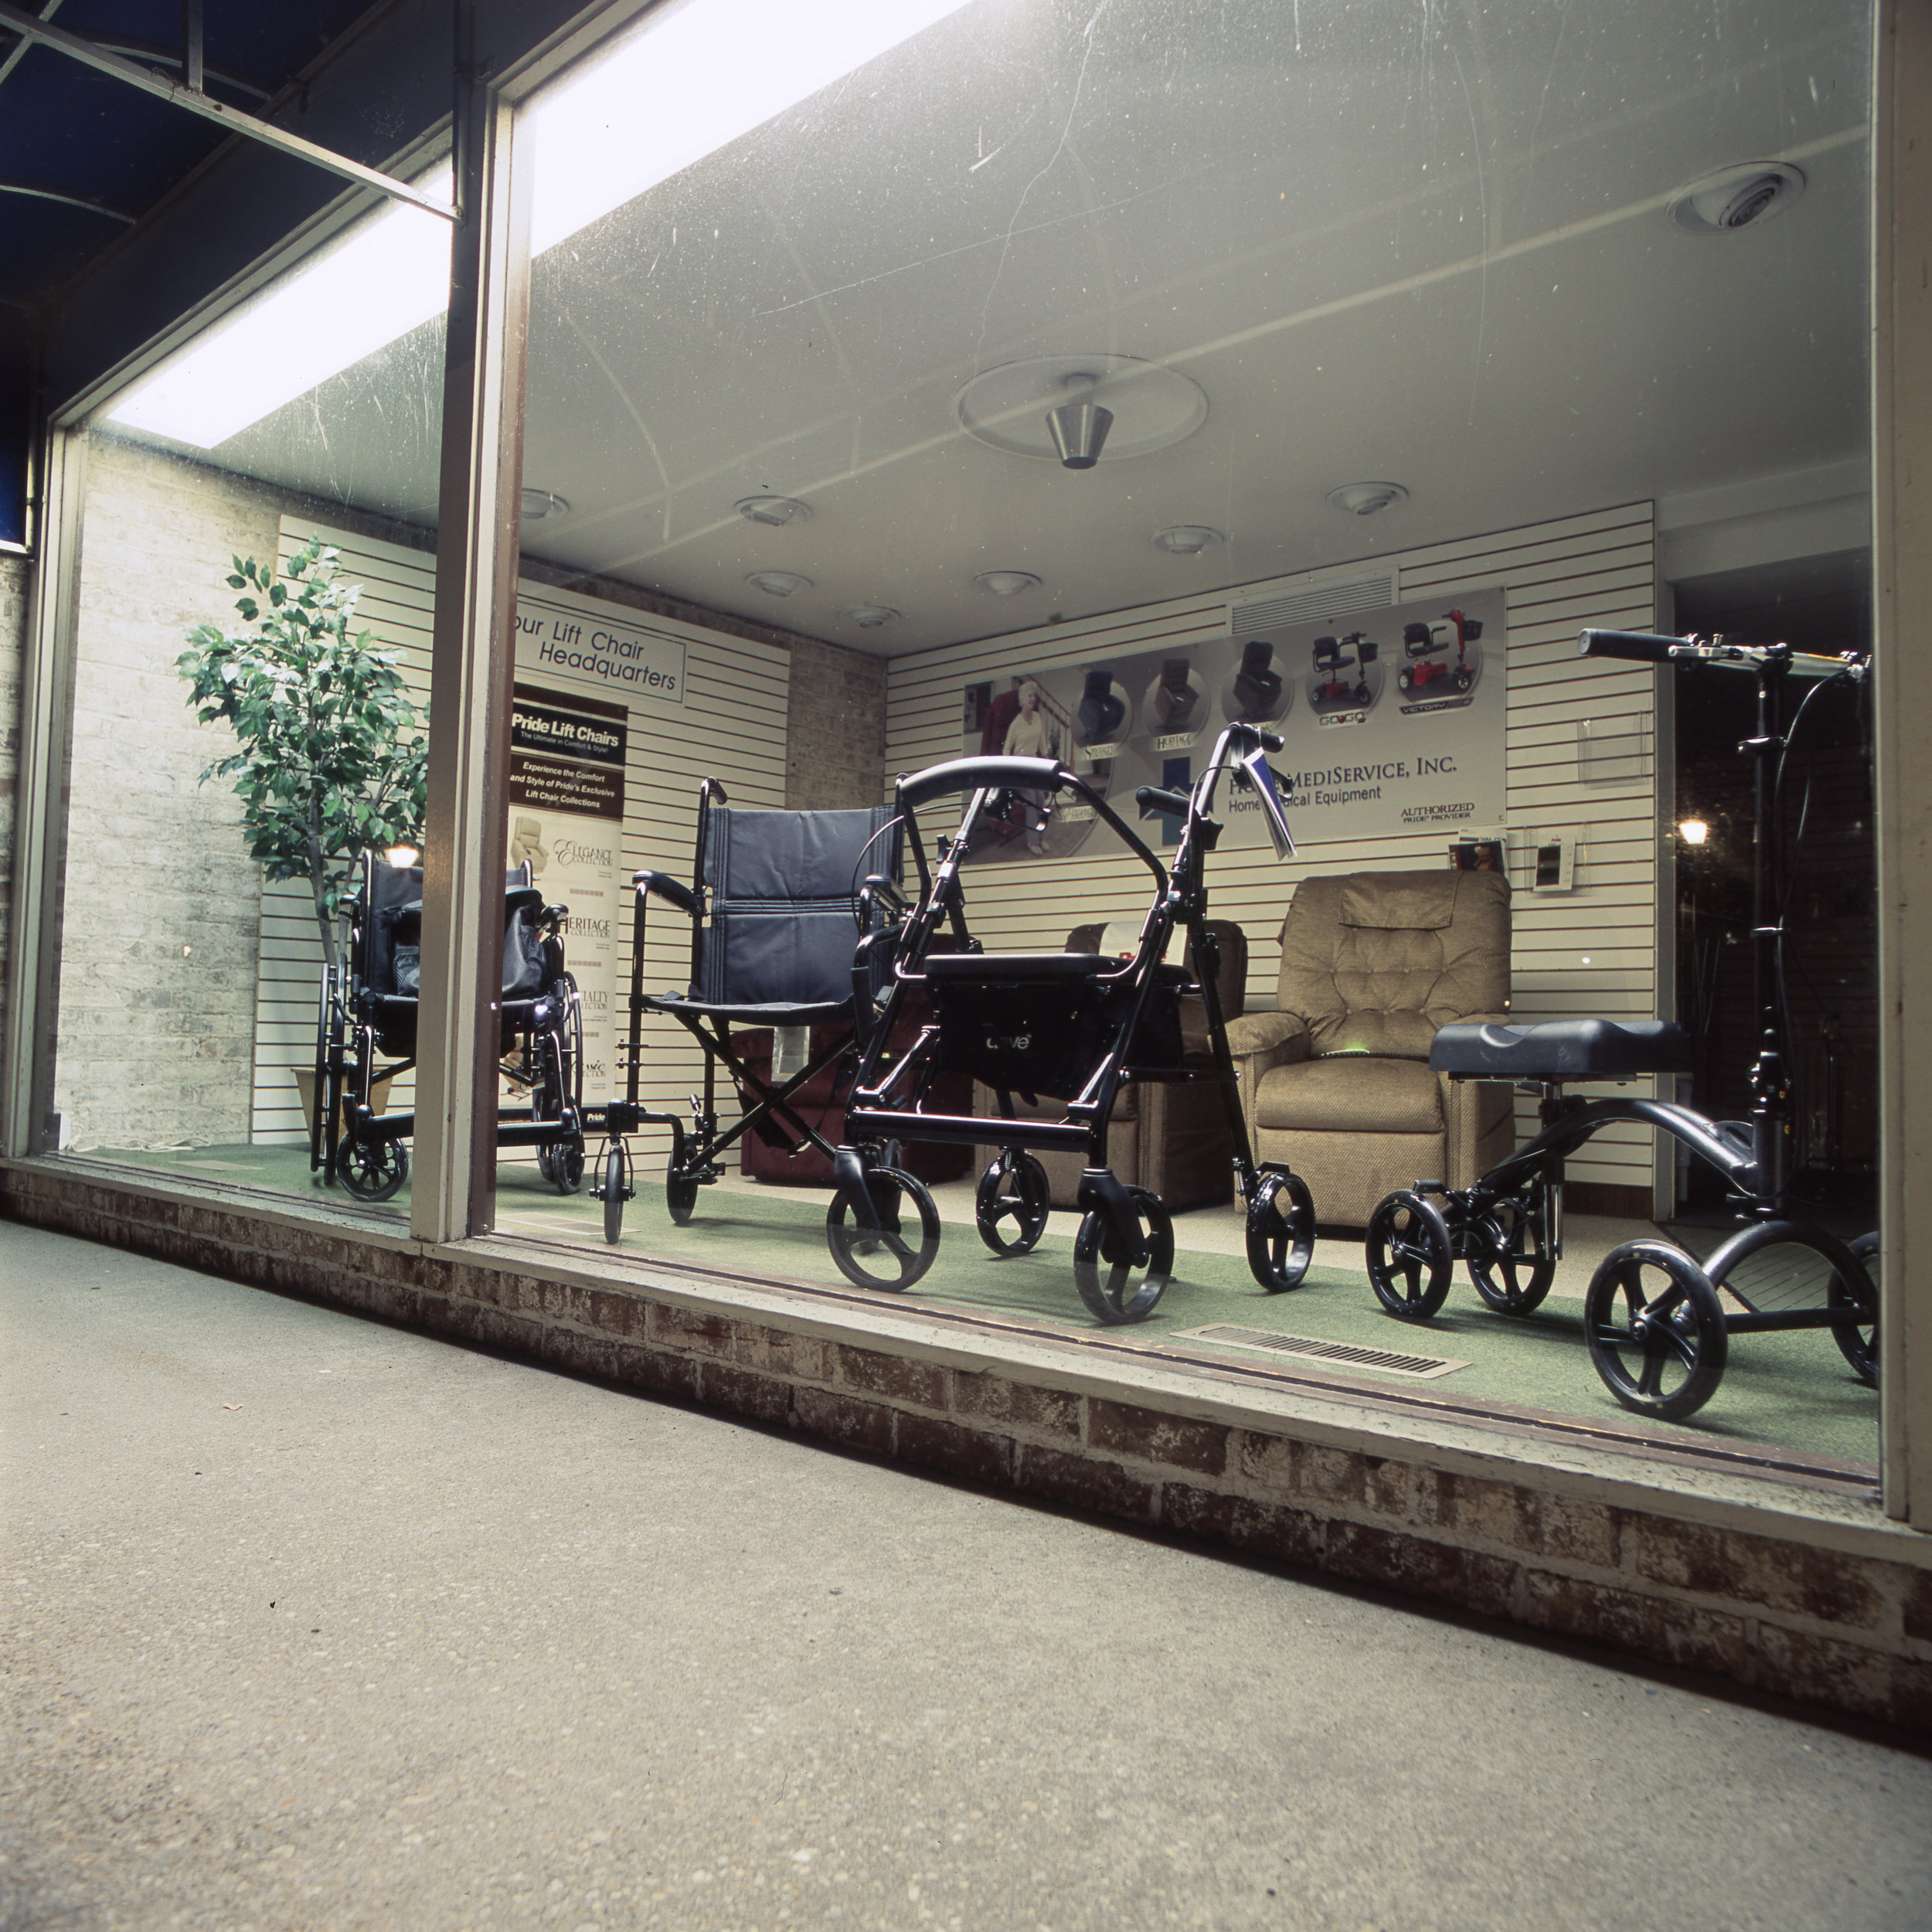 Wheelchairs Hasselblad 501cm | 80mm F2.8 T* | Fuji Provia 100f